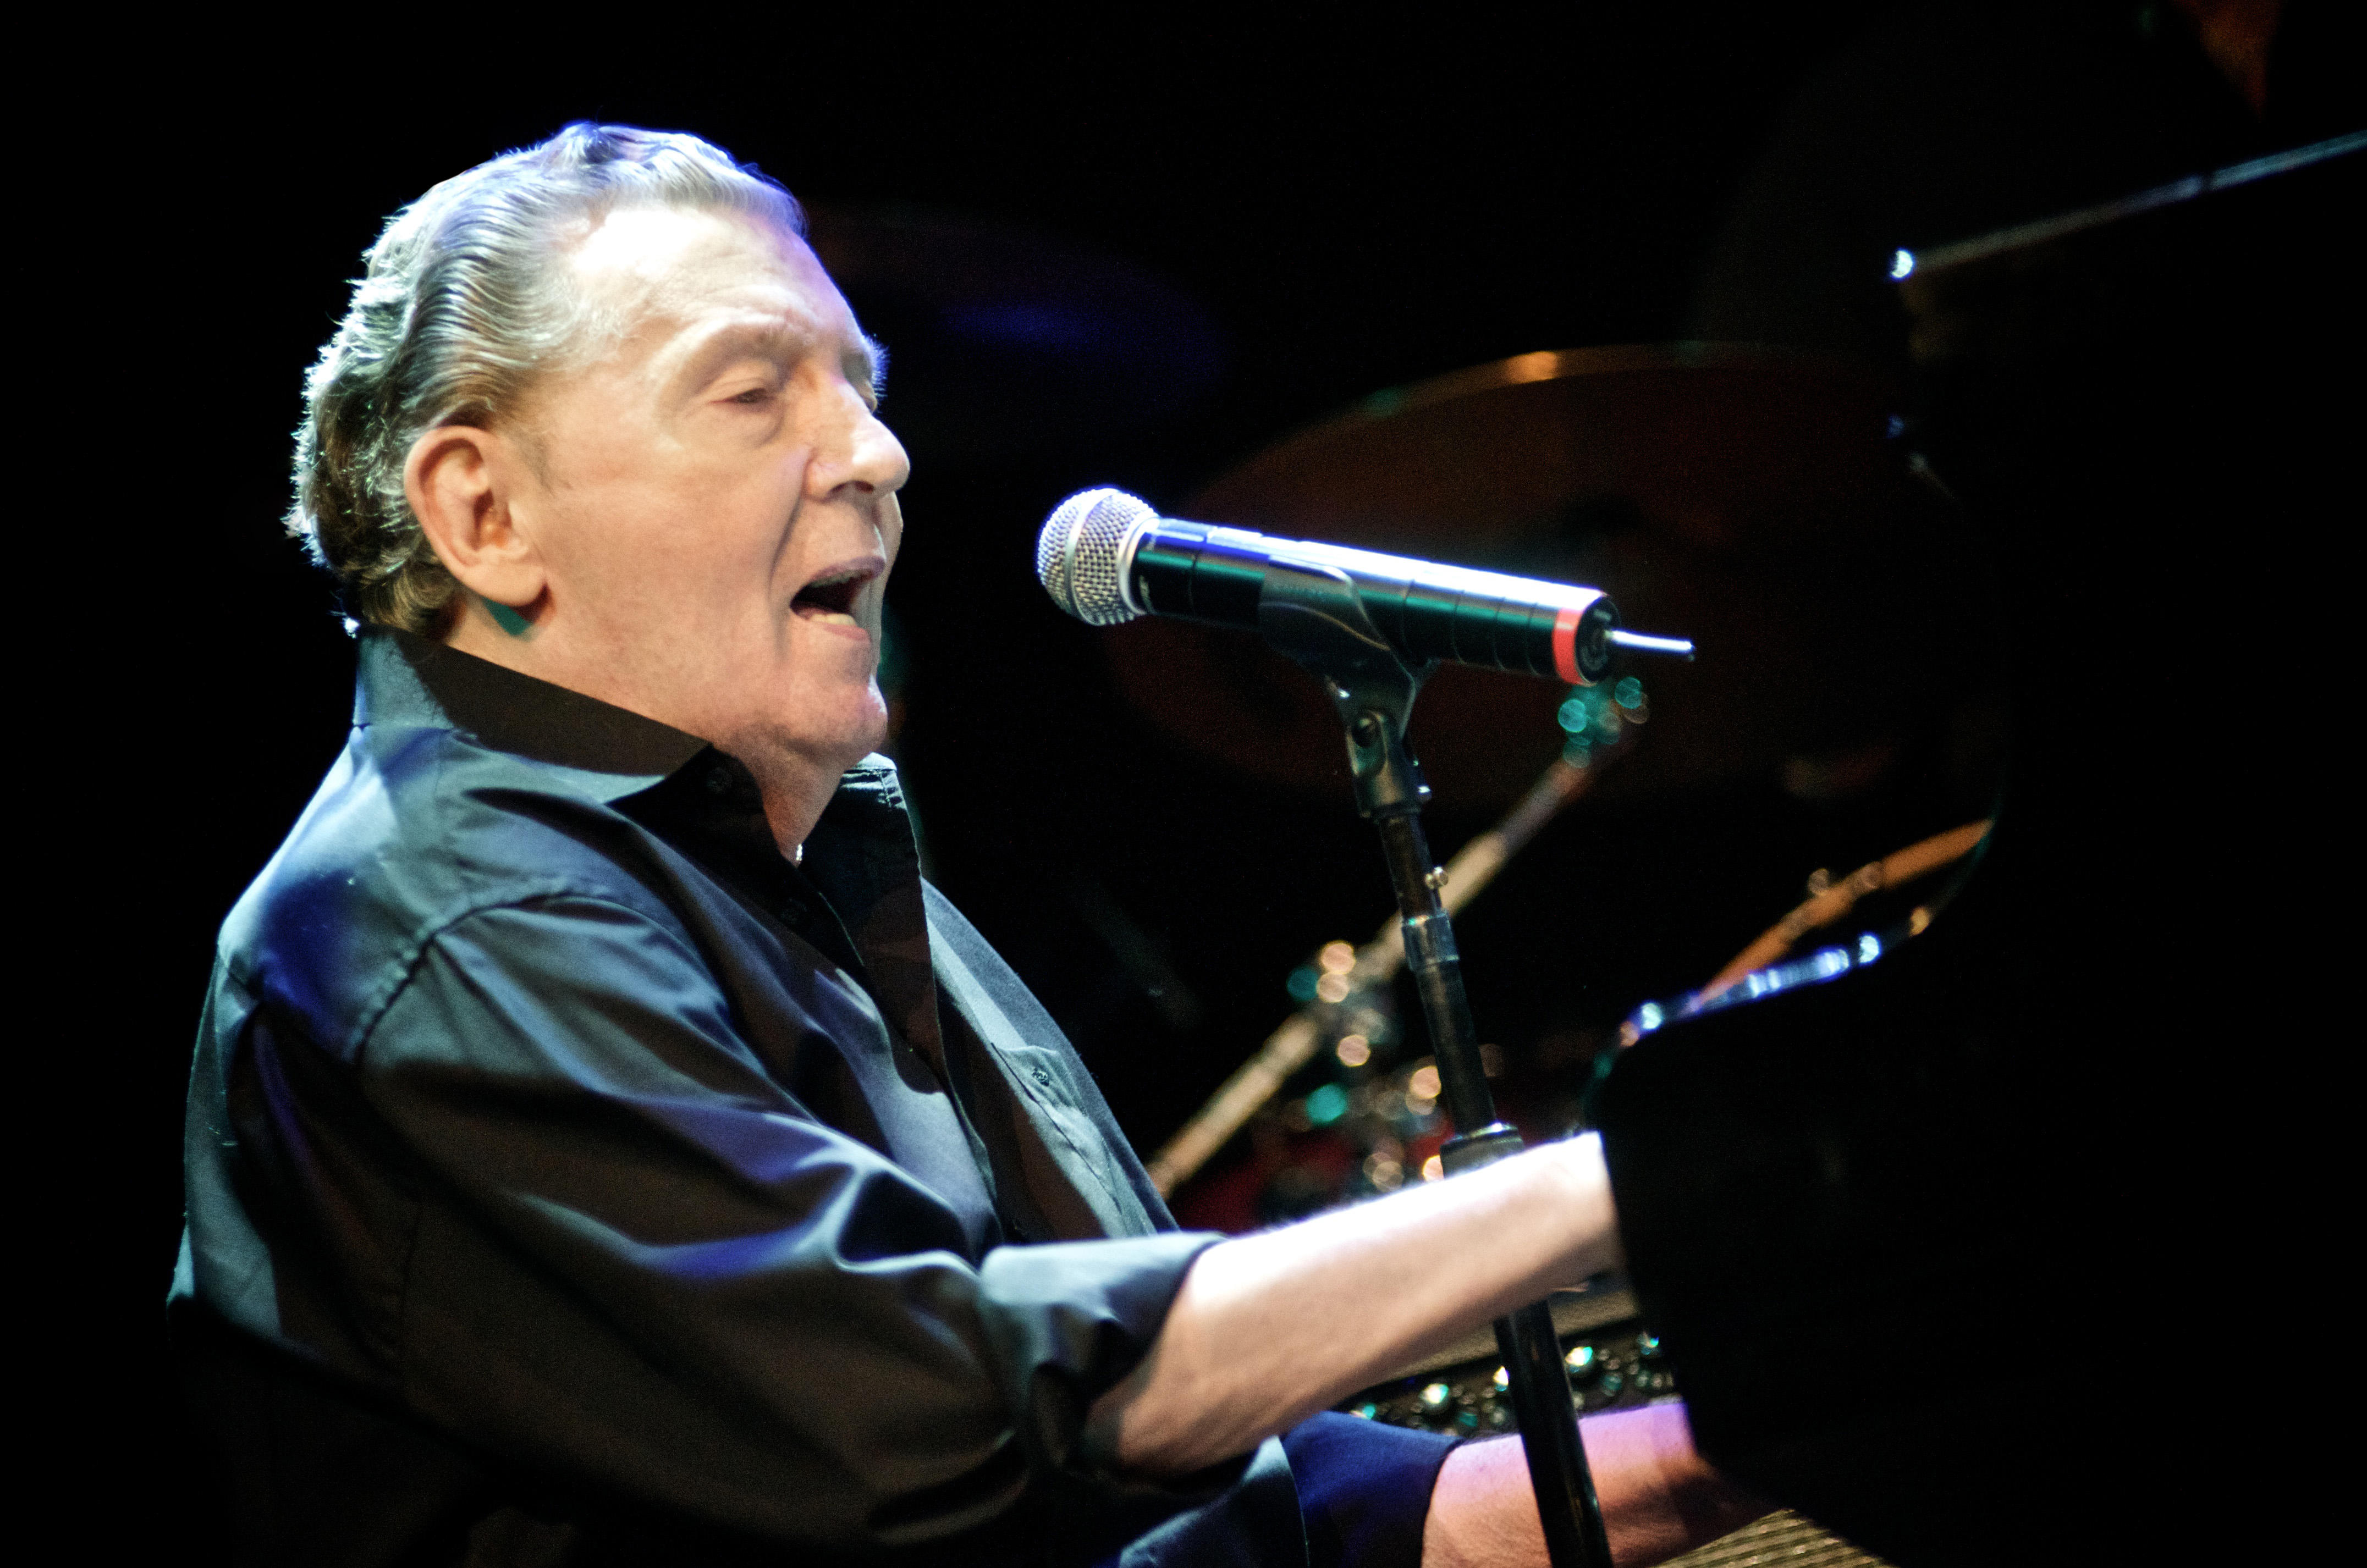 Jerry Lee Lewis - Reflection - 15 Rock 'n' Roll Hits